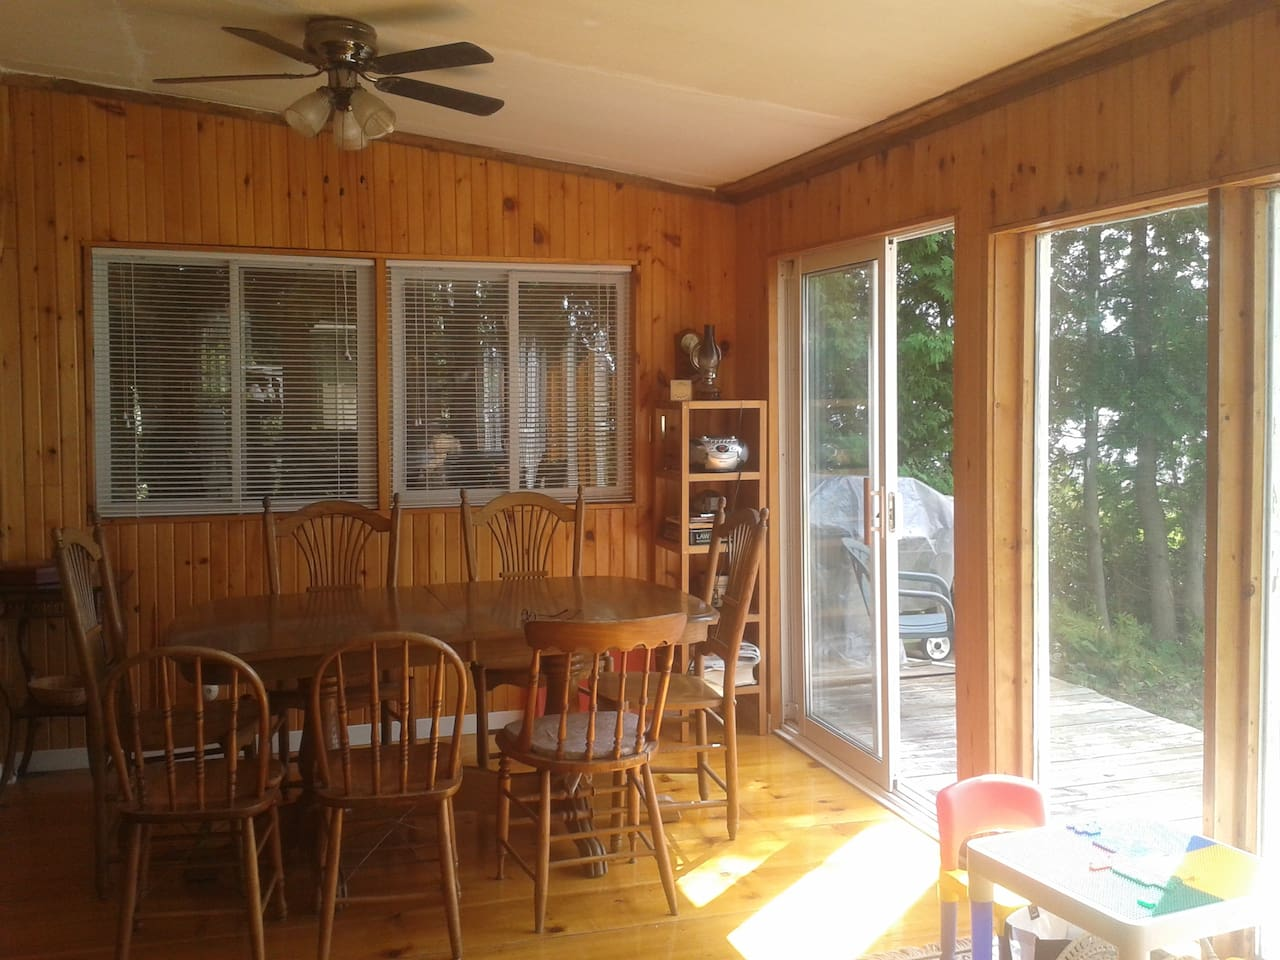 This is the dining area of the cottage, that is open-concept, with a full wall of large sliding doors that open up to the lakefront.